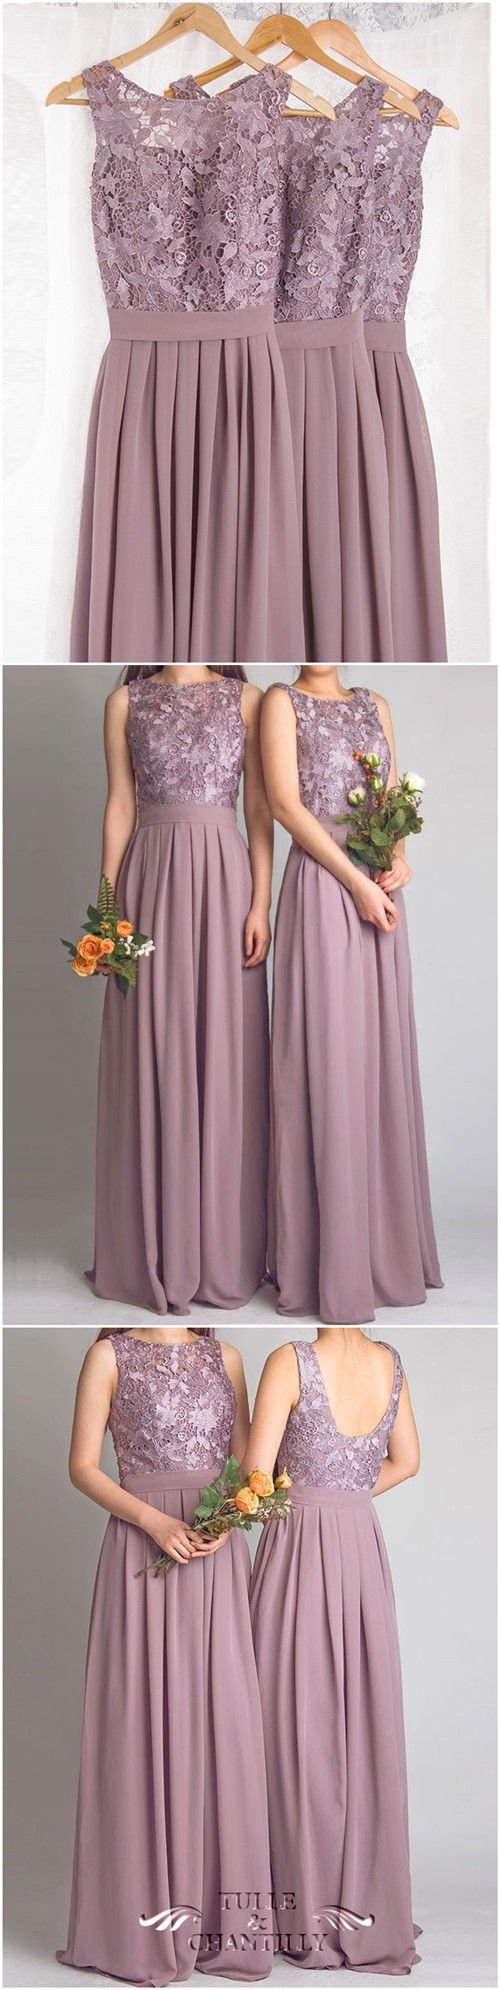 Dramatic Vintage Lace Bridesmaid Dresses with Flowing Chiffon Skirt: I LOVE this dress, it's perfect!!